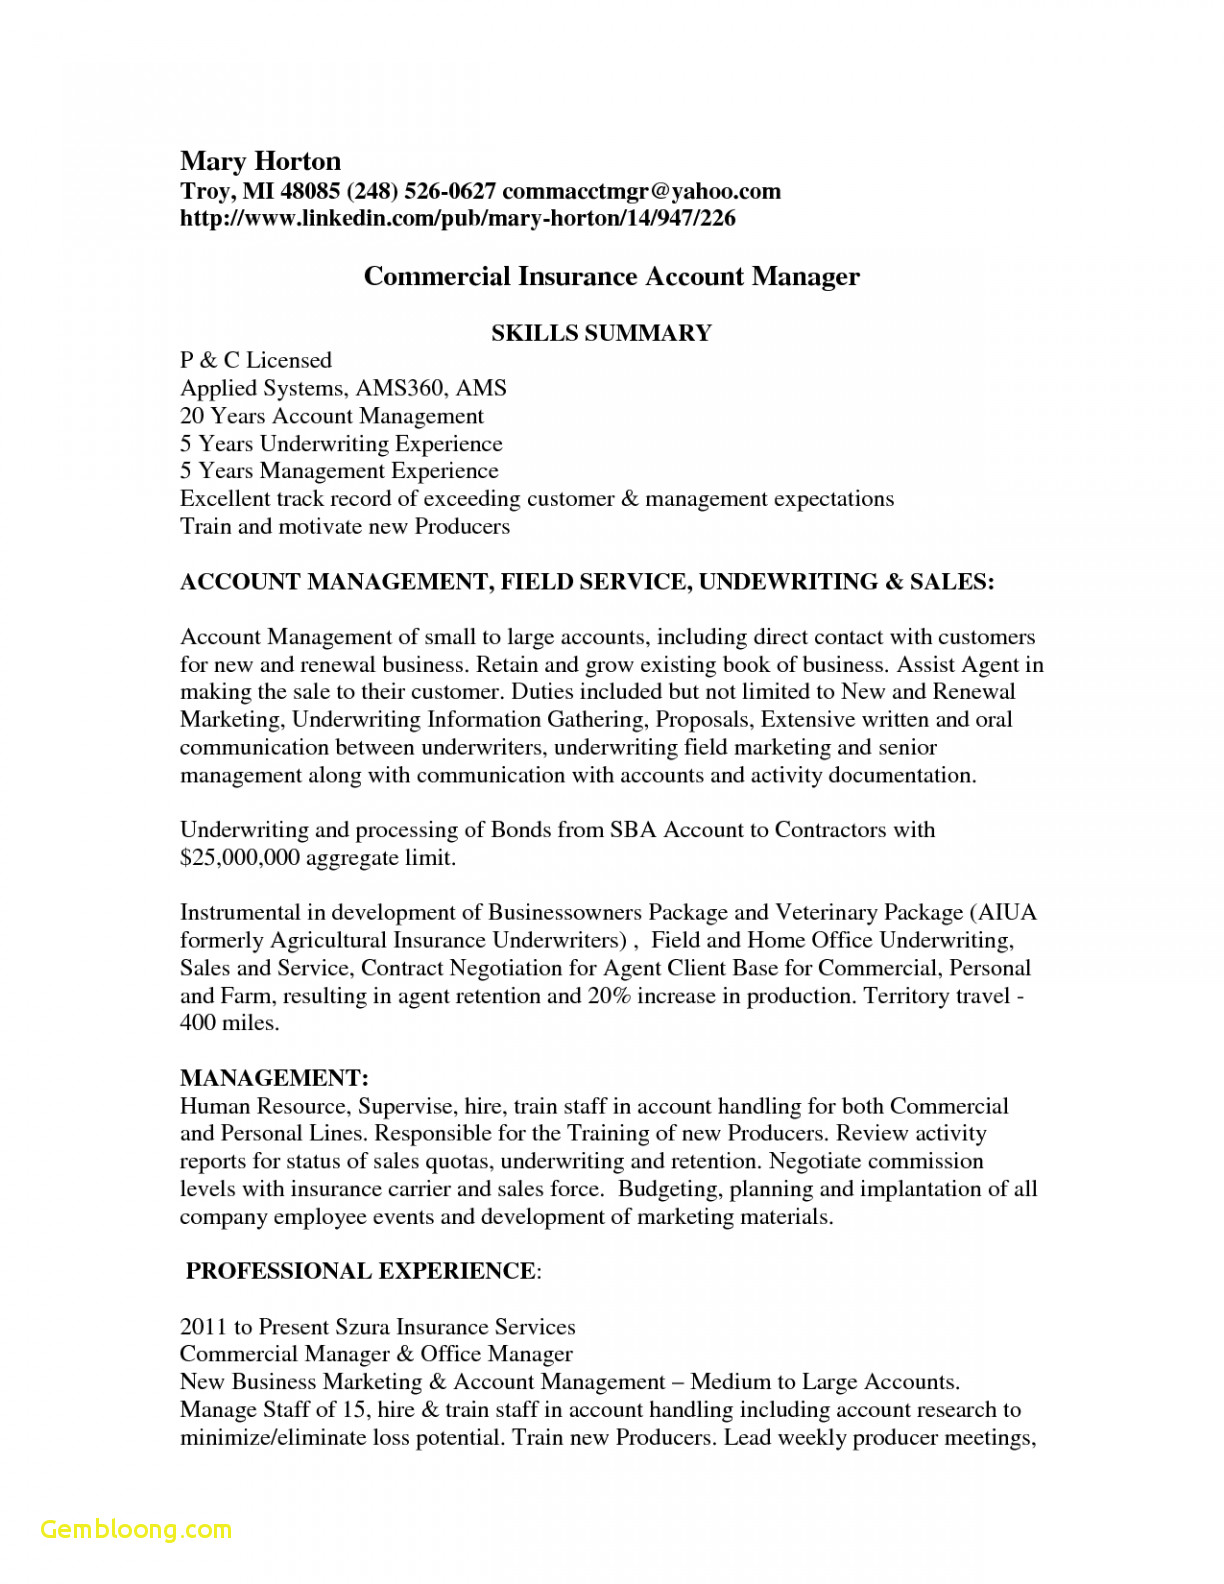 Insurance Marketing Letter Template - Insurance Resume Templates Download now Professional Job Resume